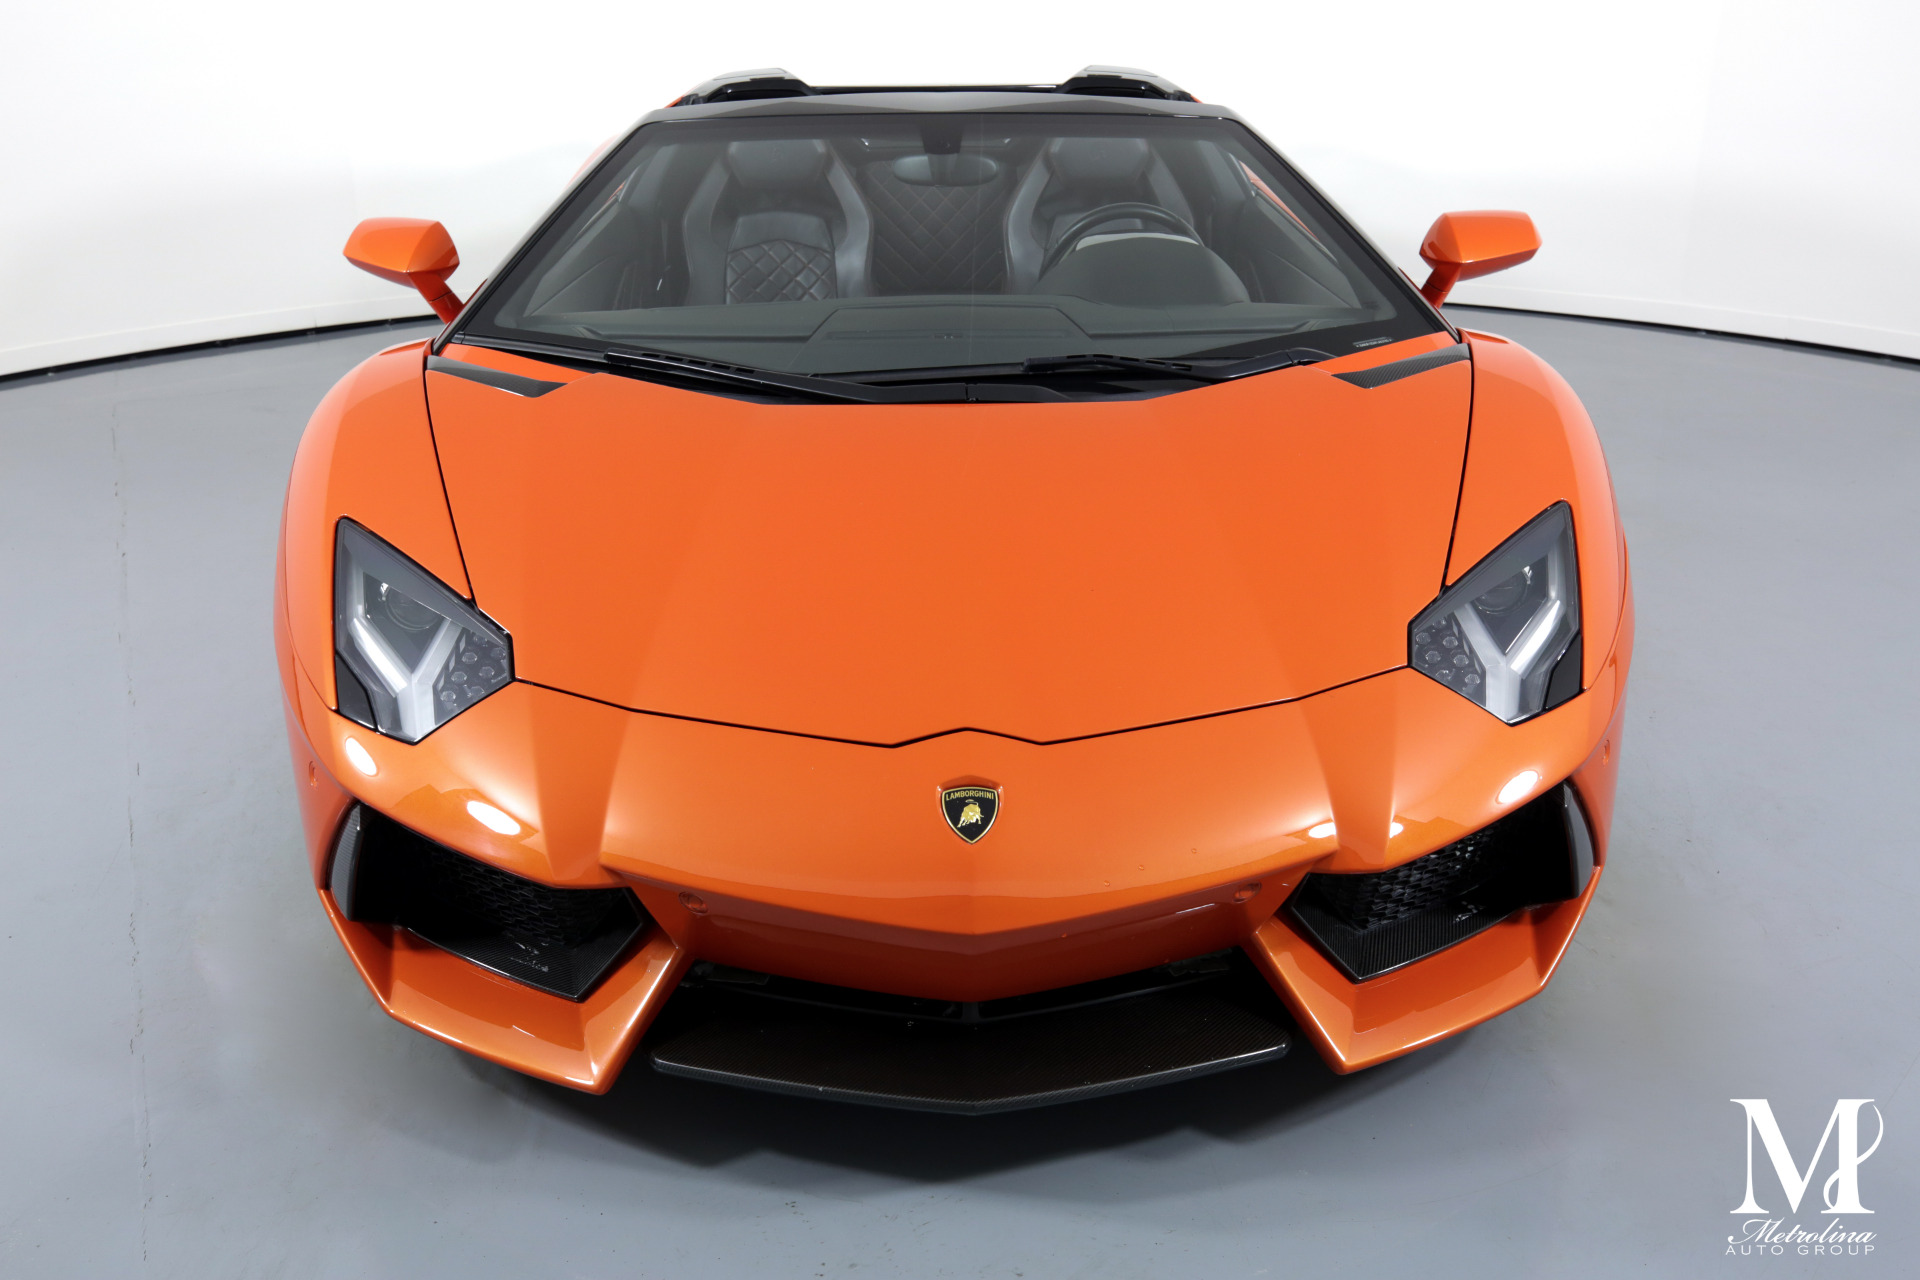 Used 2015 Lamborghini Aventador LP 700-4 for sale $399,996 at Metrolina Auto Group in Charlotte NC 28217 - 4